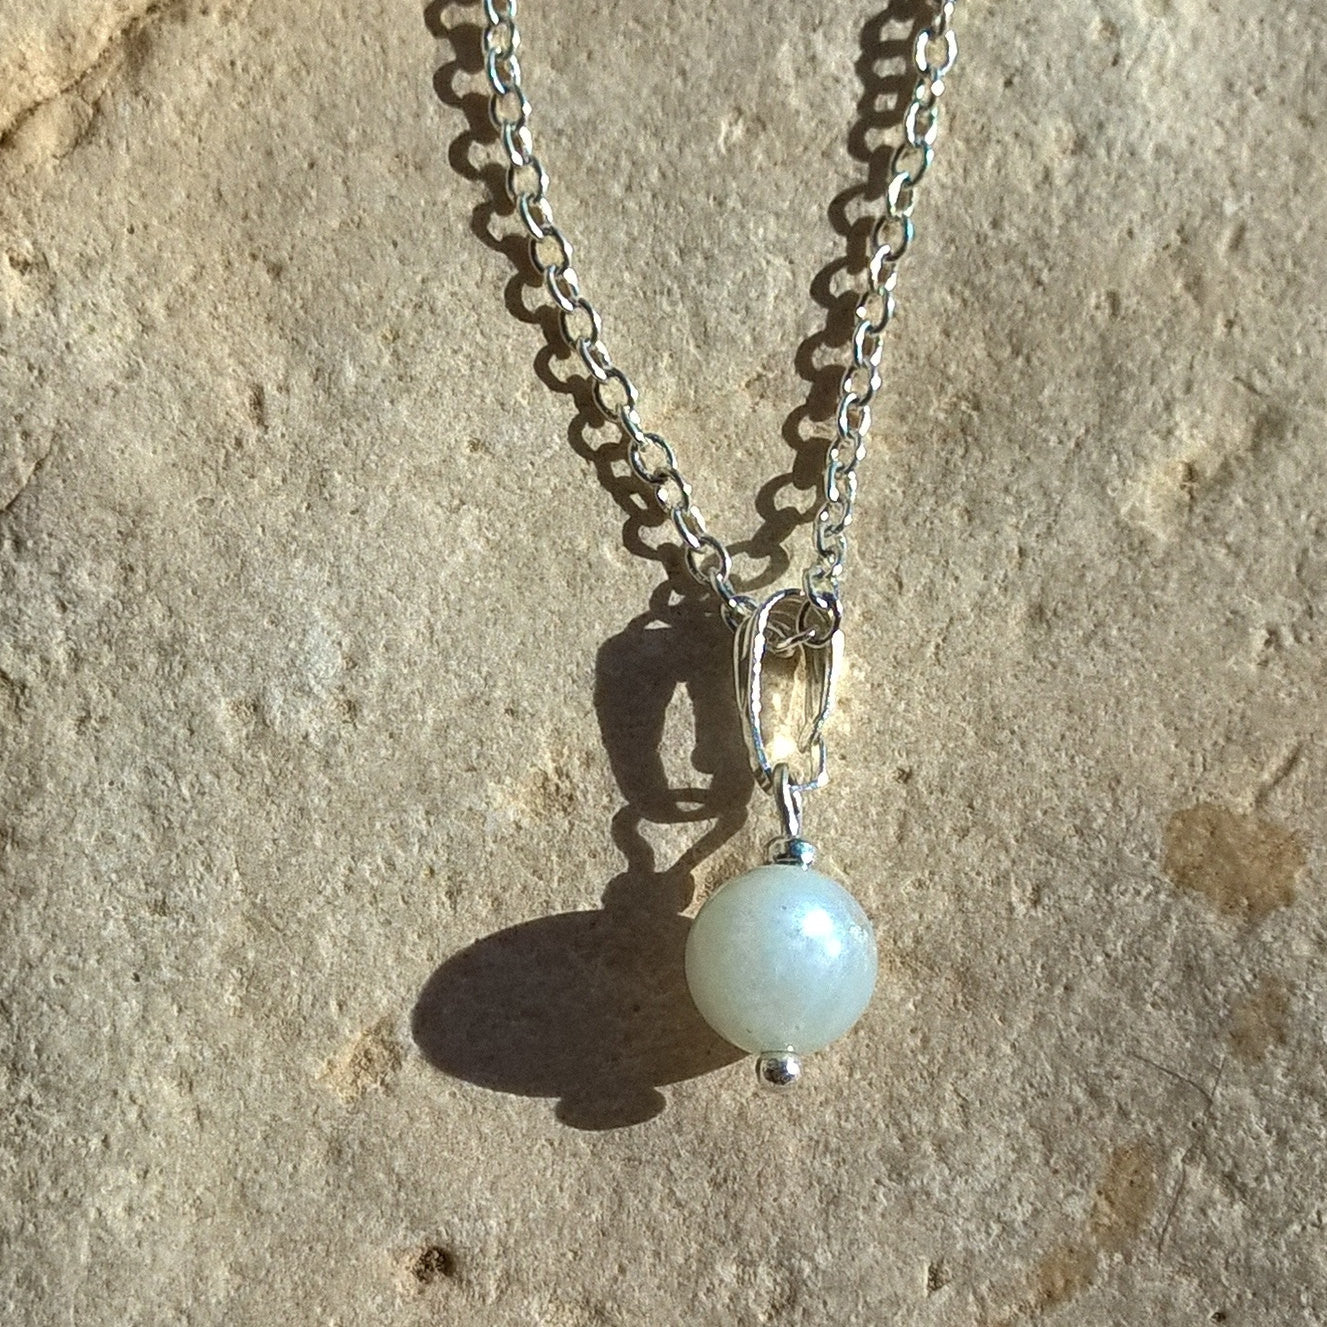 Womens Moonstone necklace, tiny stone pendant woman, minimalist casual jewelry